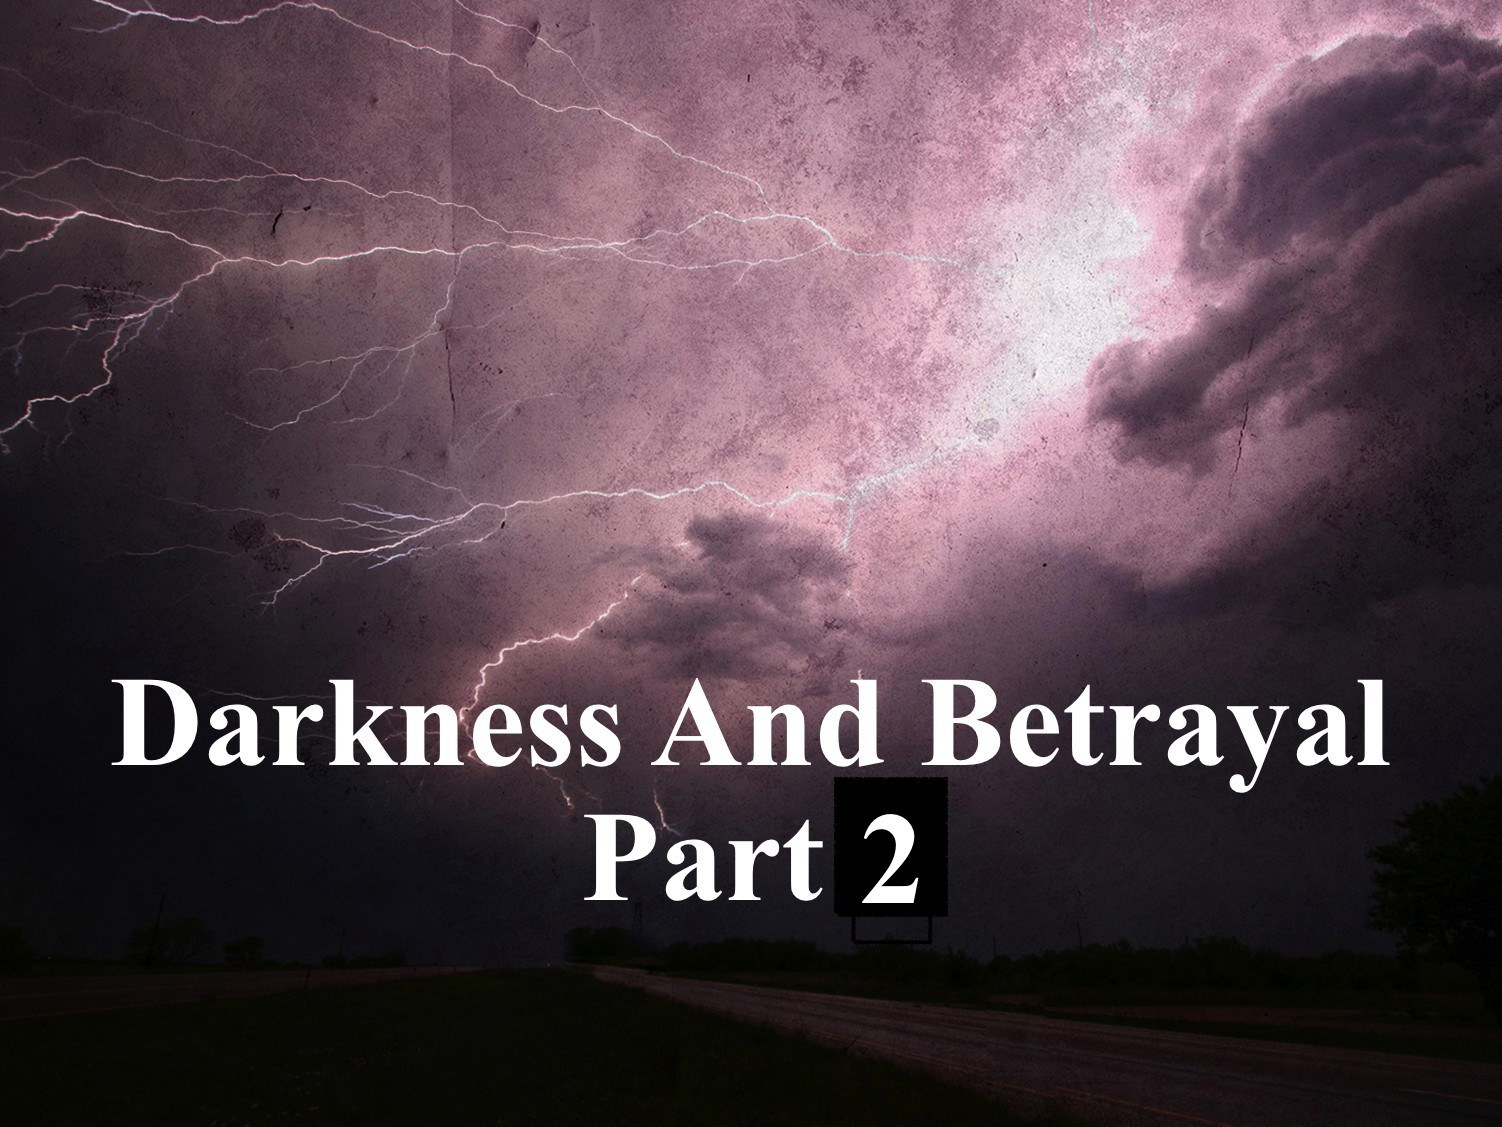 Darkness And Betrayal P2 5/16/2017 11 AM